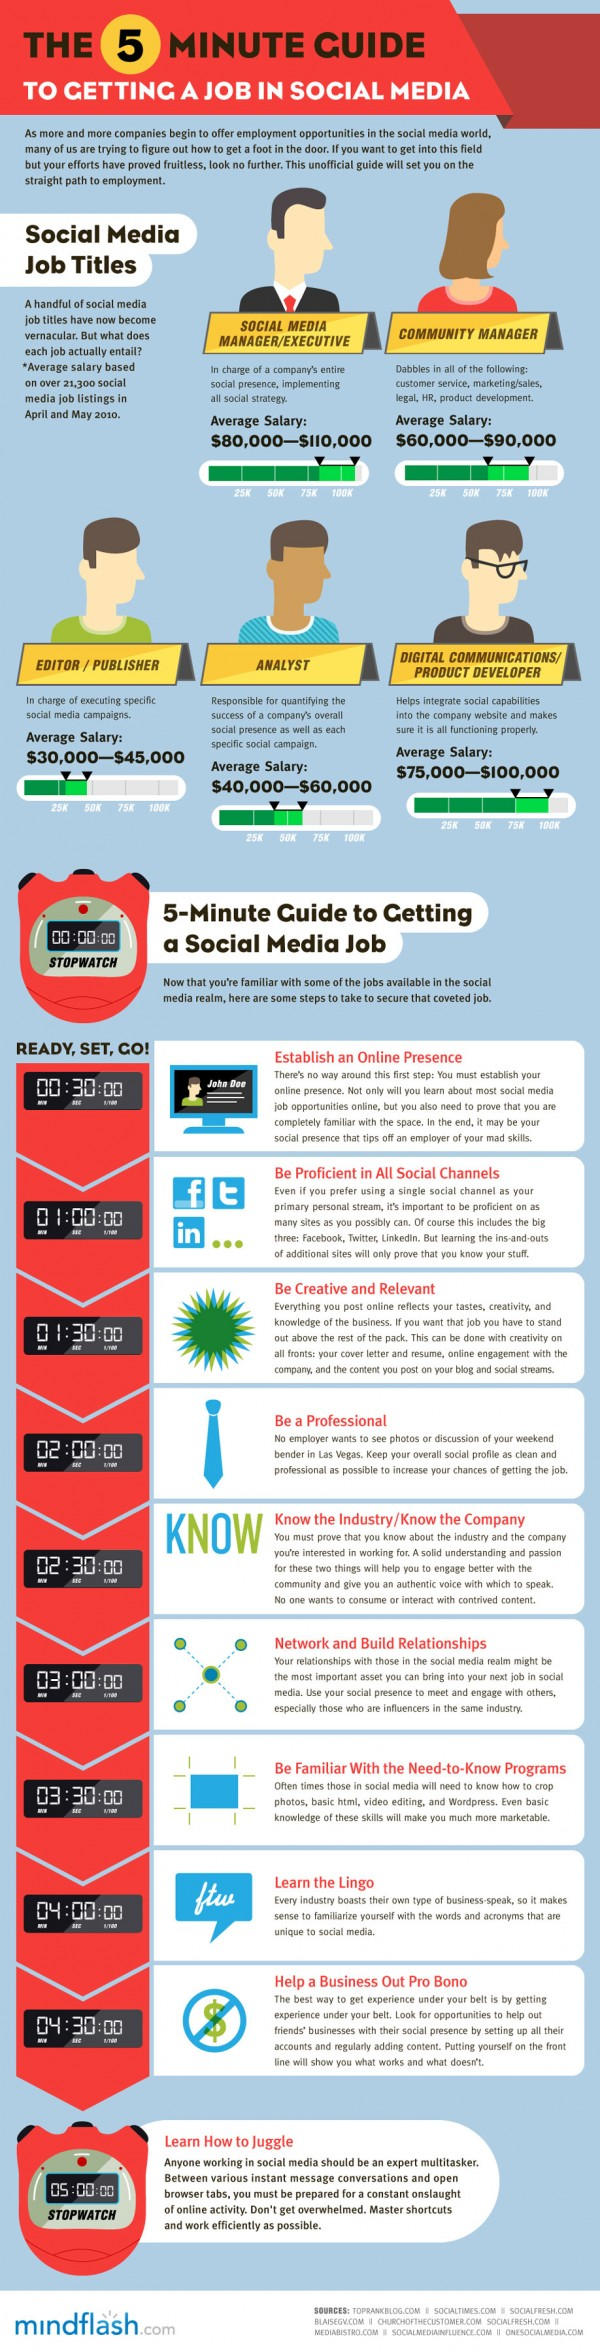 infographic-on-social-media-08